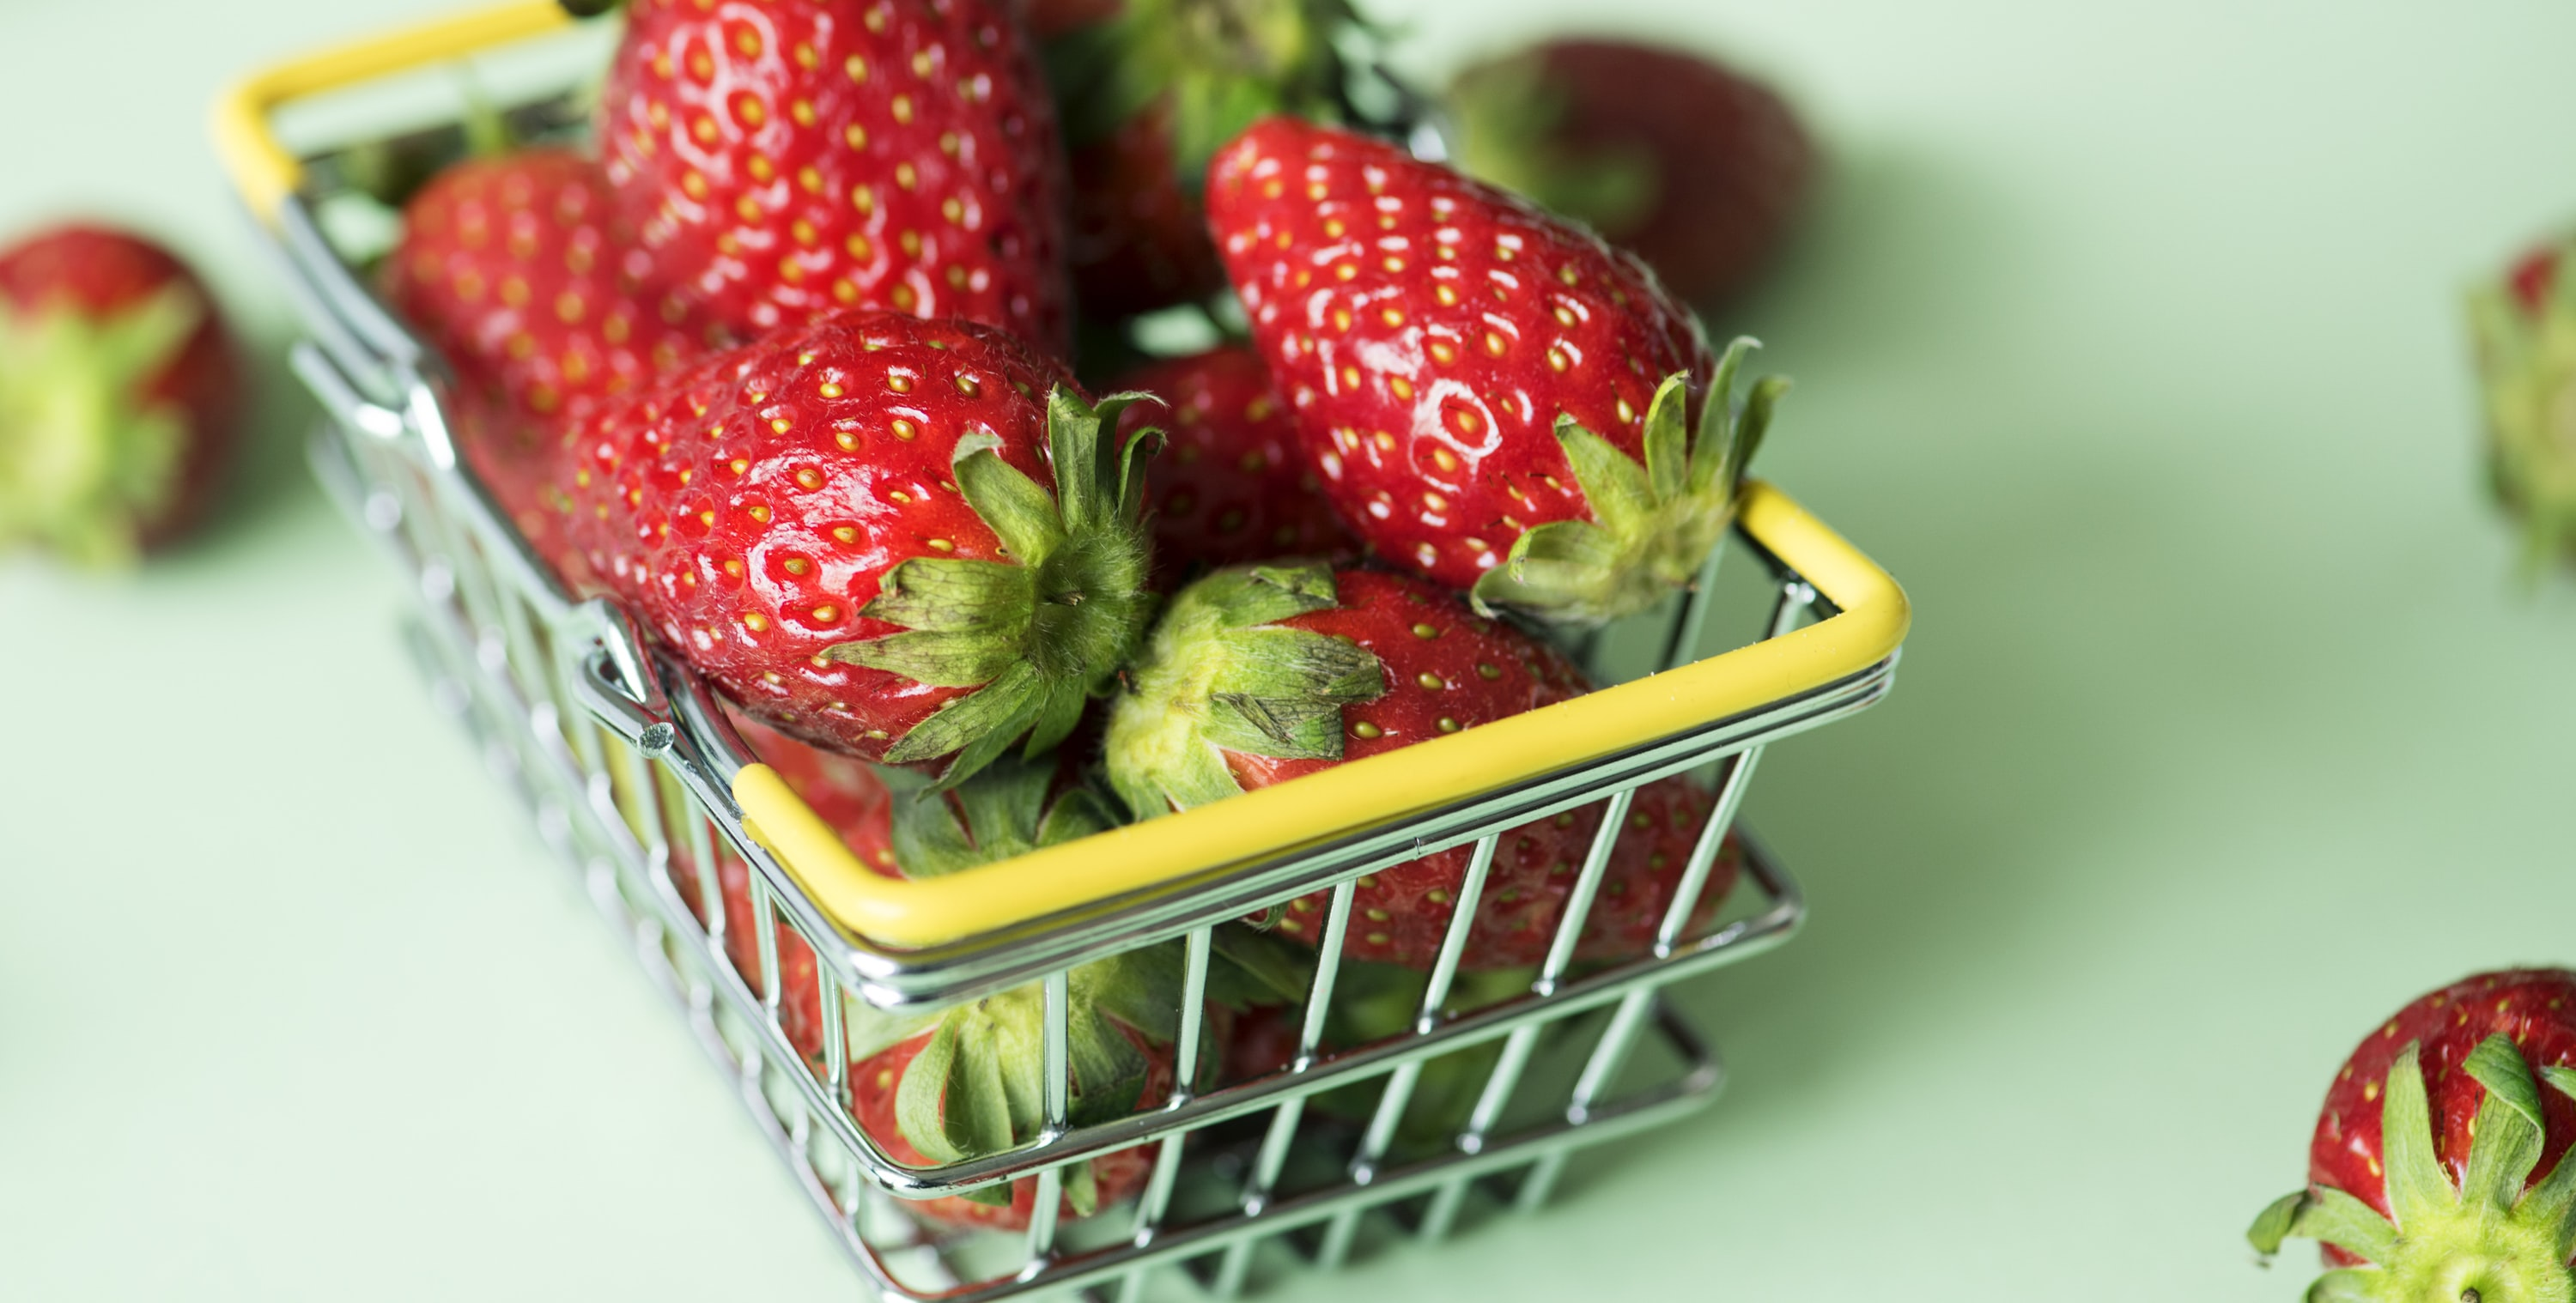 closeup photo of strawberries in baket